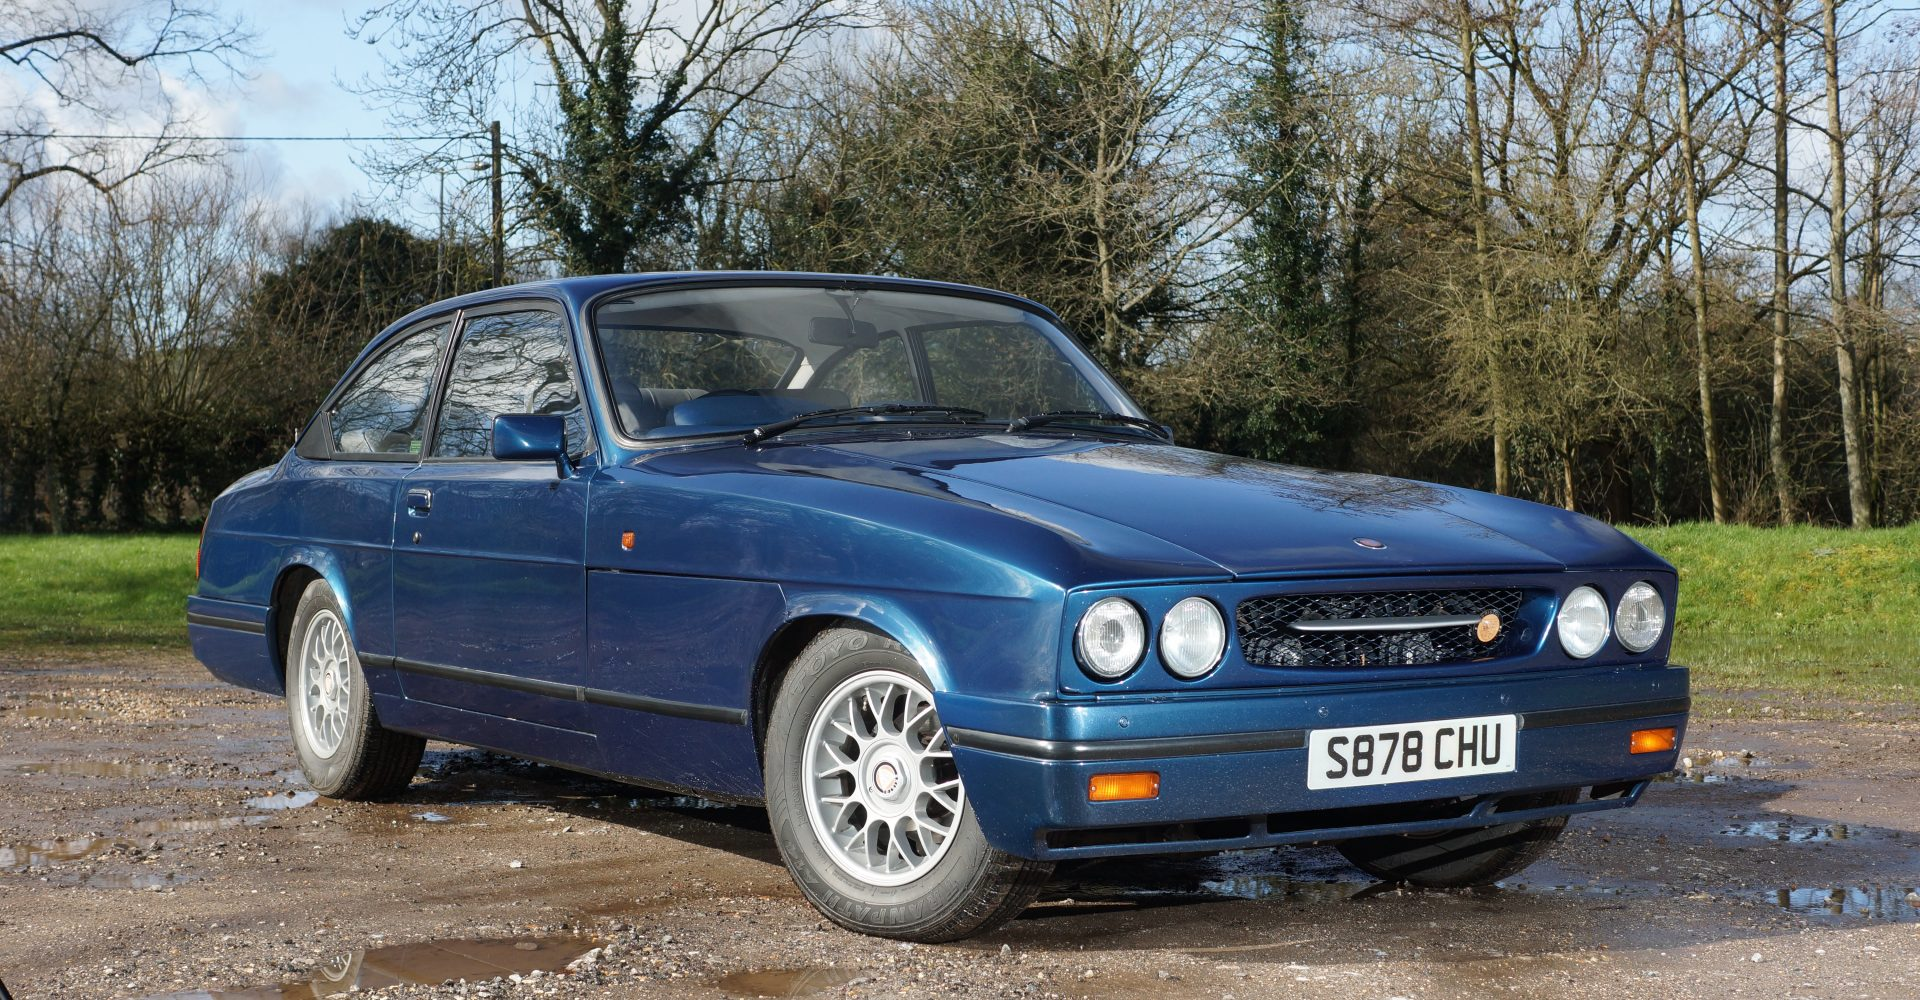 Classic Bristol Blenheim is the star of the show at auction